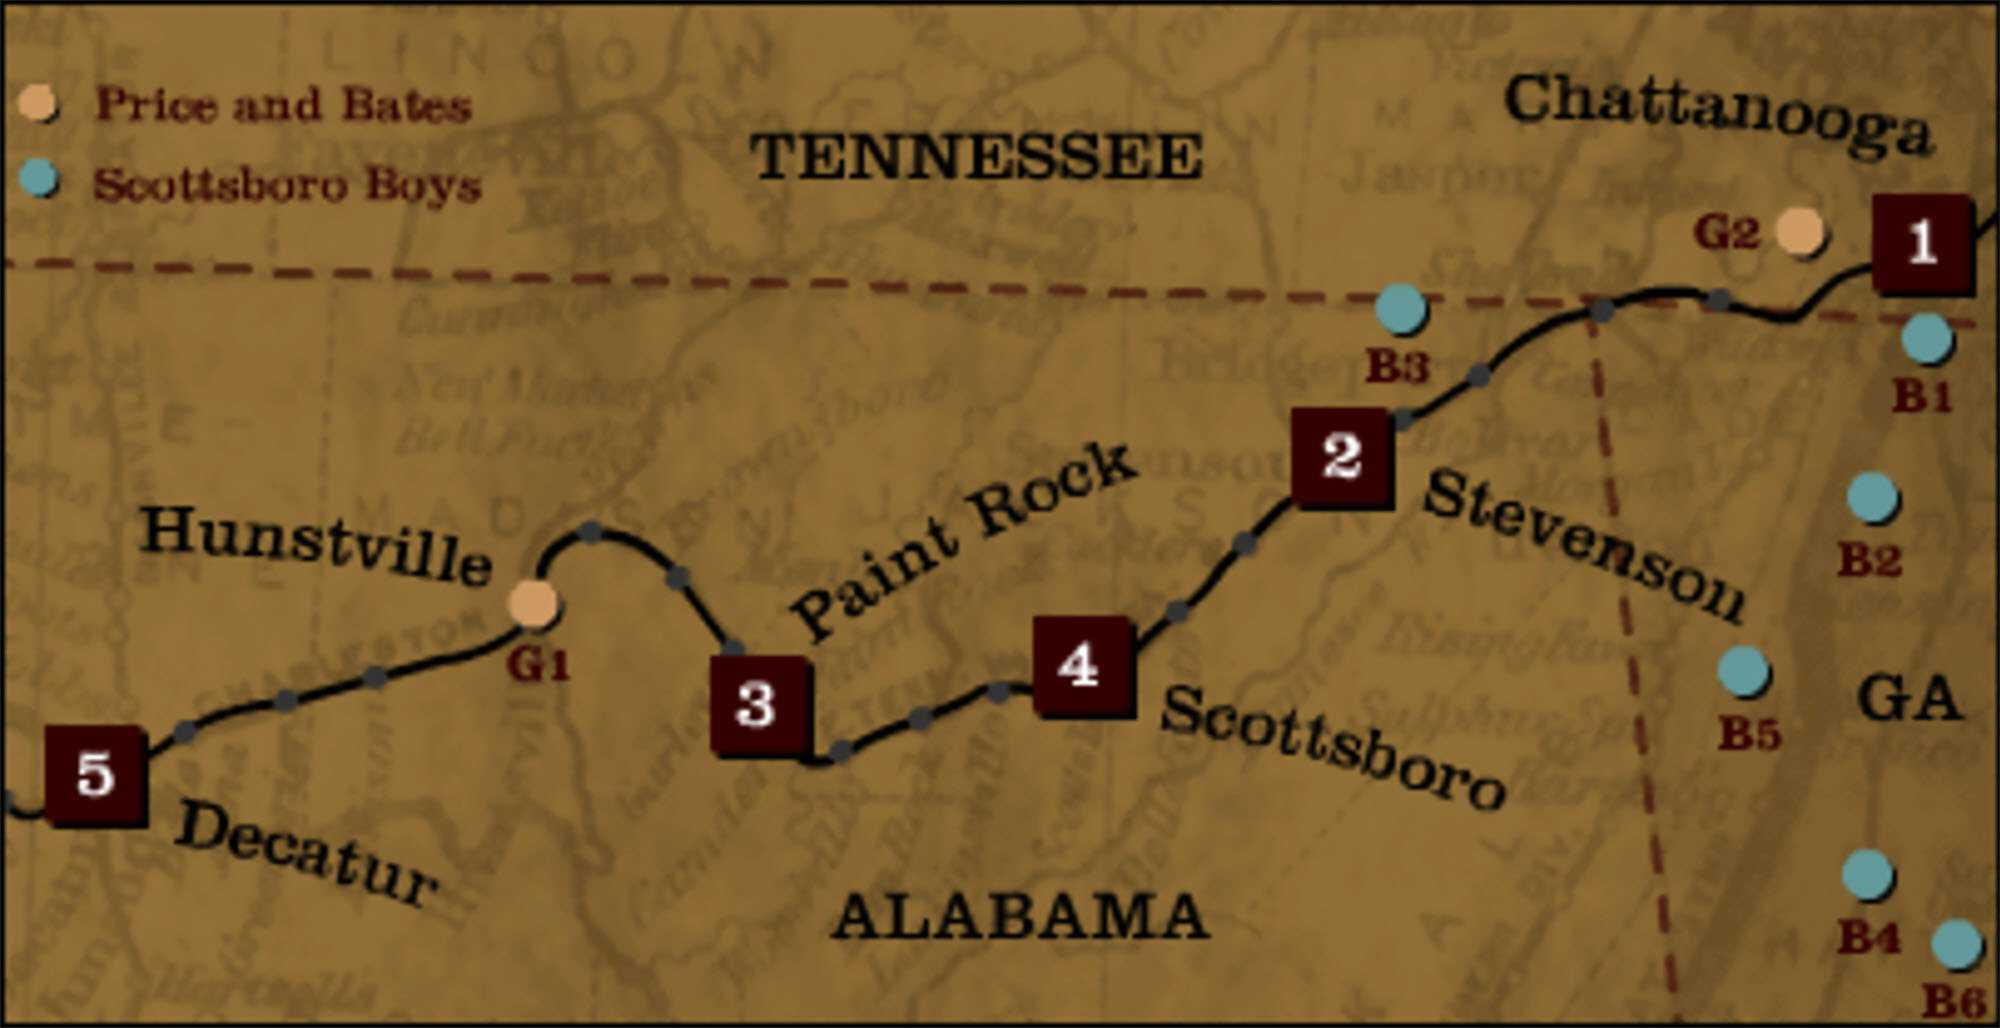 Scottsboro-map.jpg